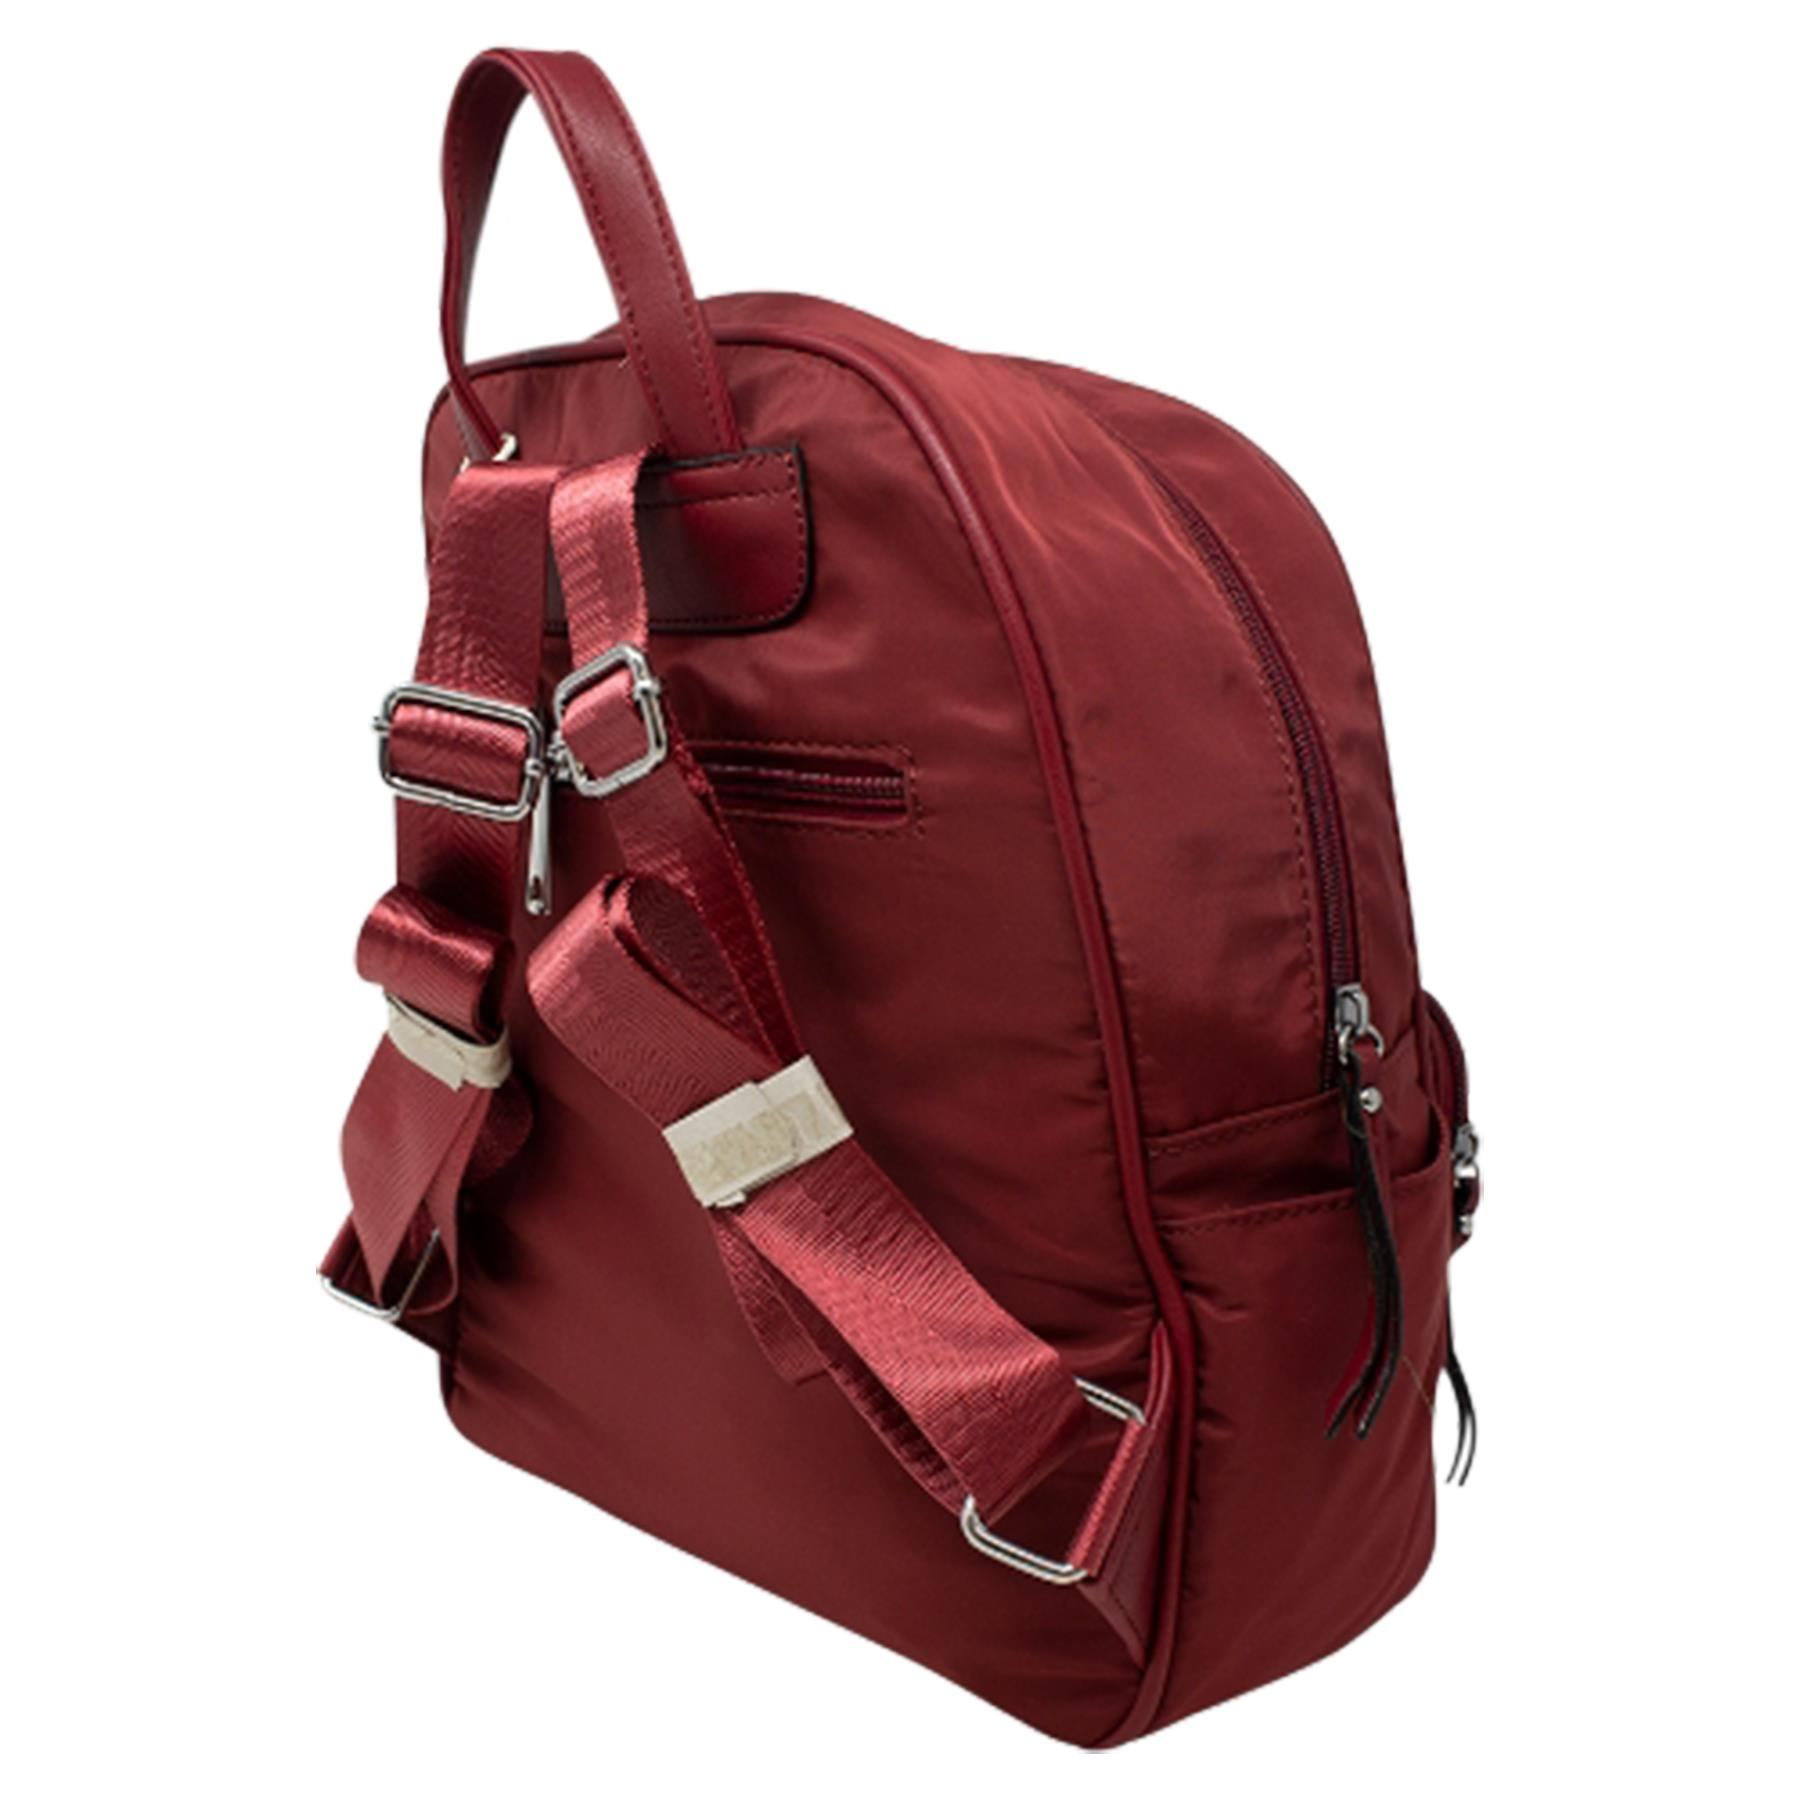 New-Unisex-Plain-Nylon-Showerproof-School-College-Backpack-Rucksack thumbnail 24